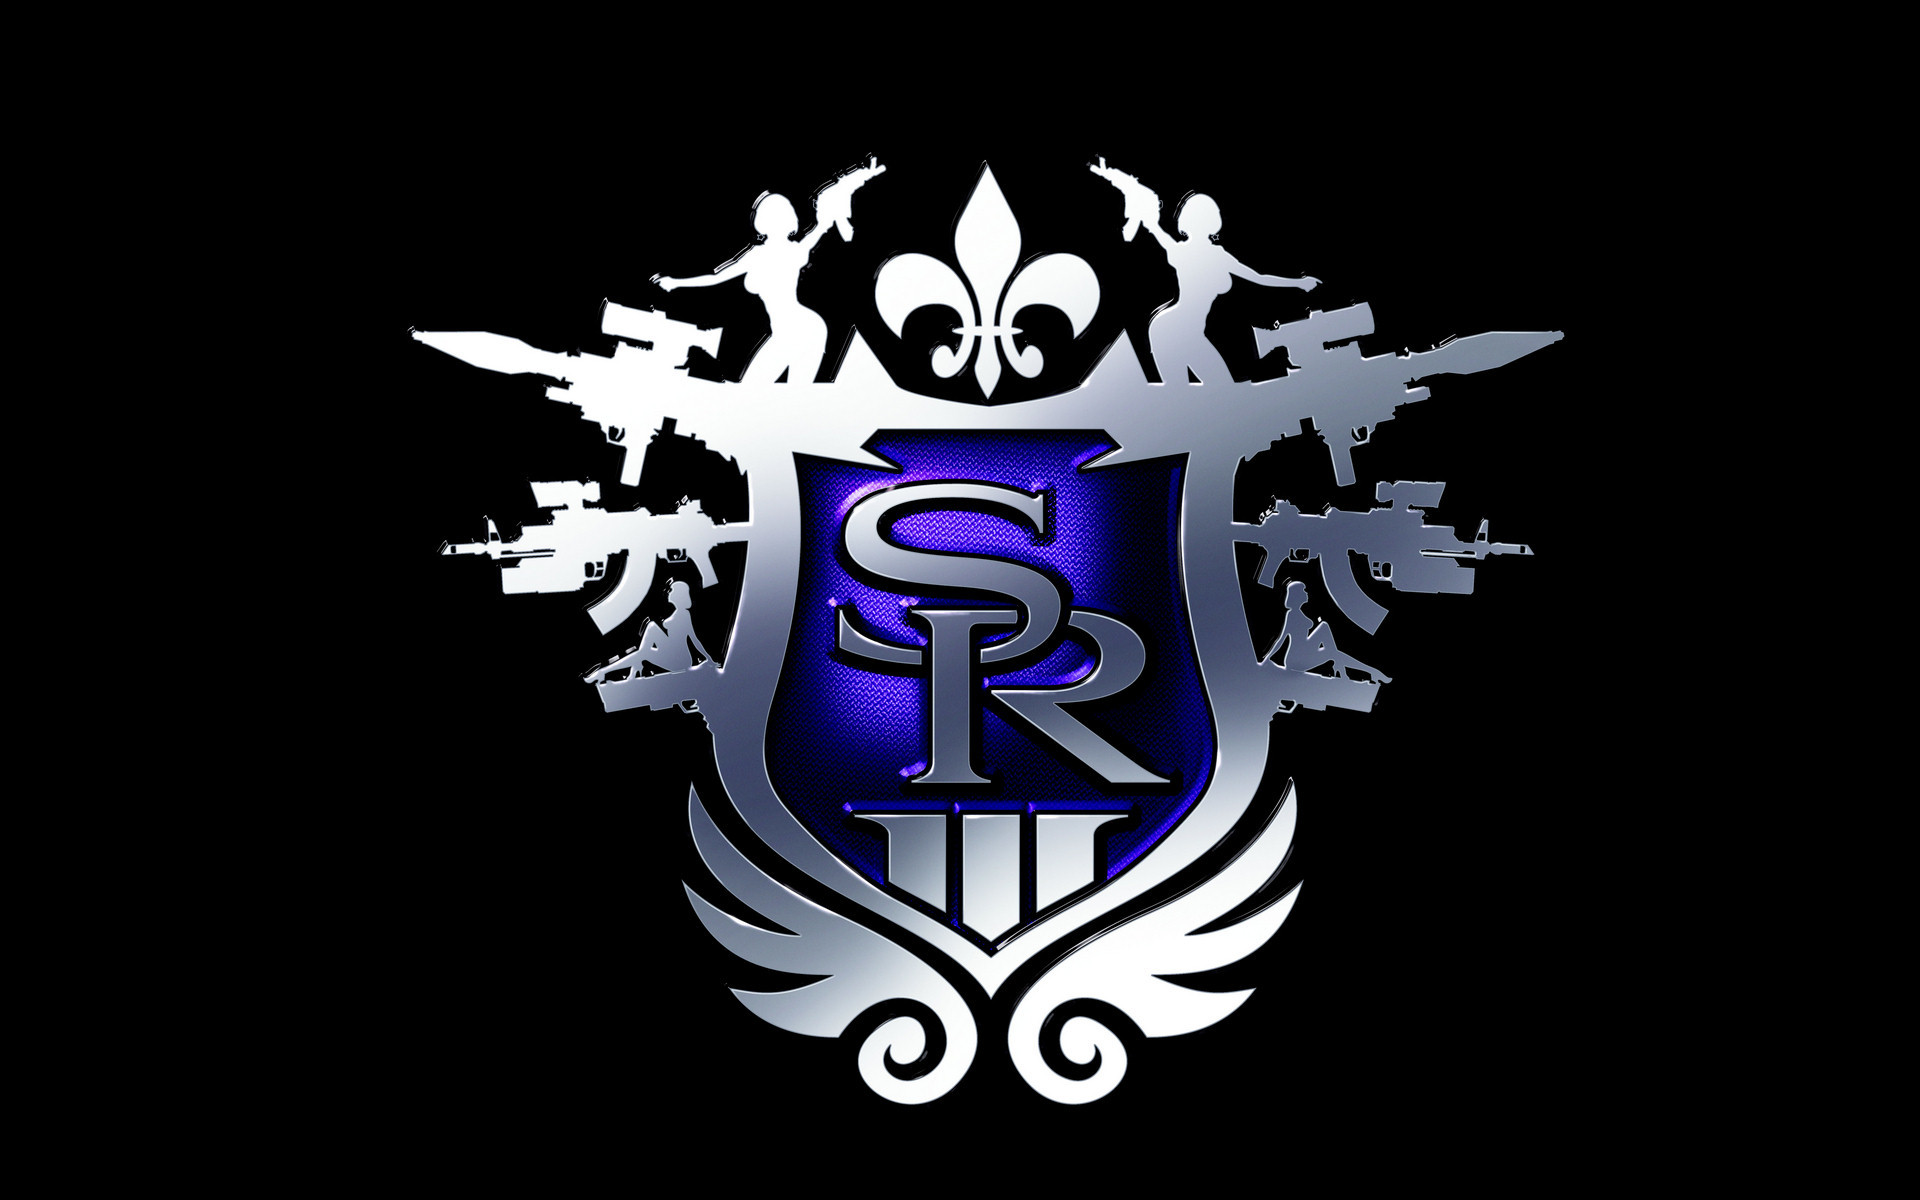 1920x1200 saints row 4 logo - Buscar con Google